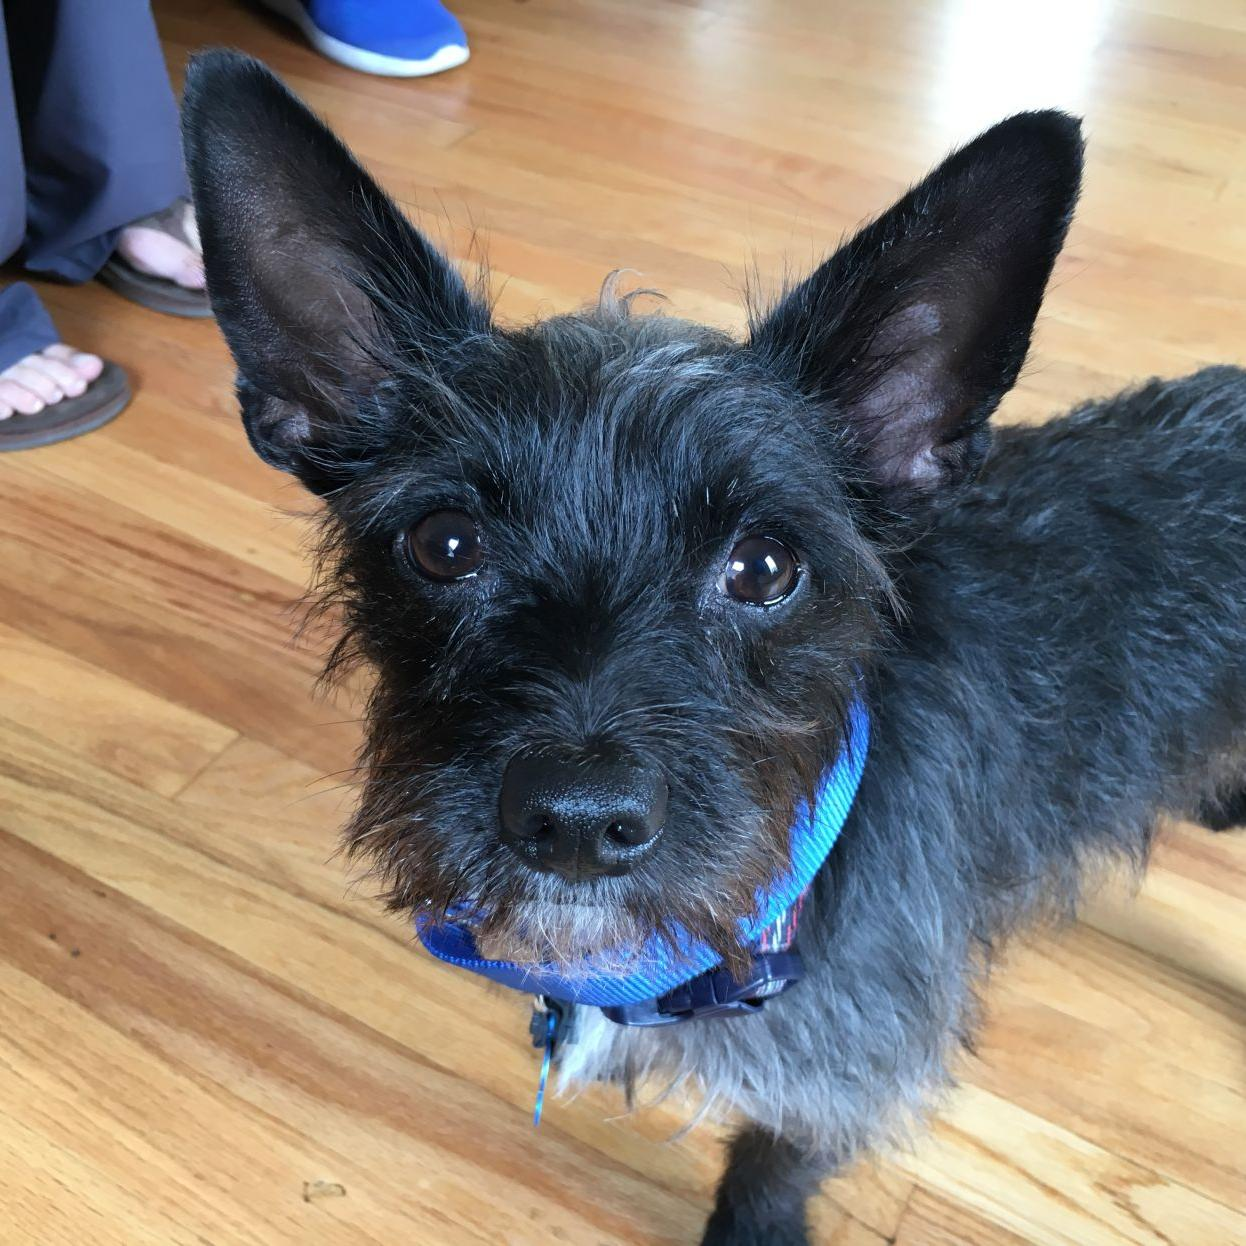 Dog Gone Problems My Cairn Terrier Snarls When She Sees Other Dogs Blogs Omaha Com